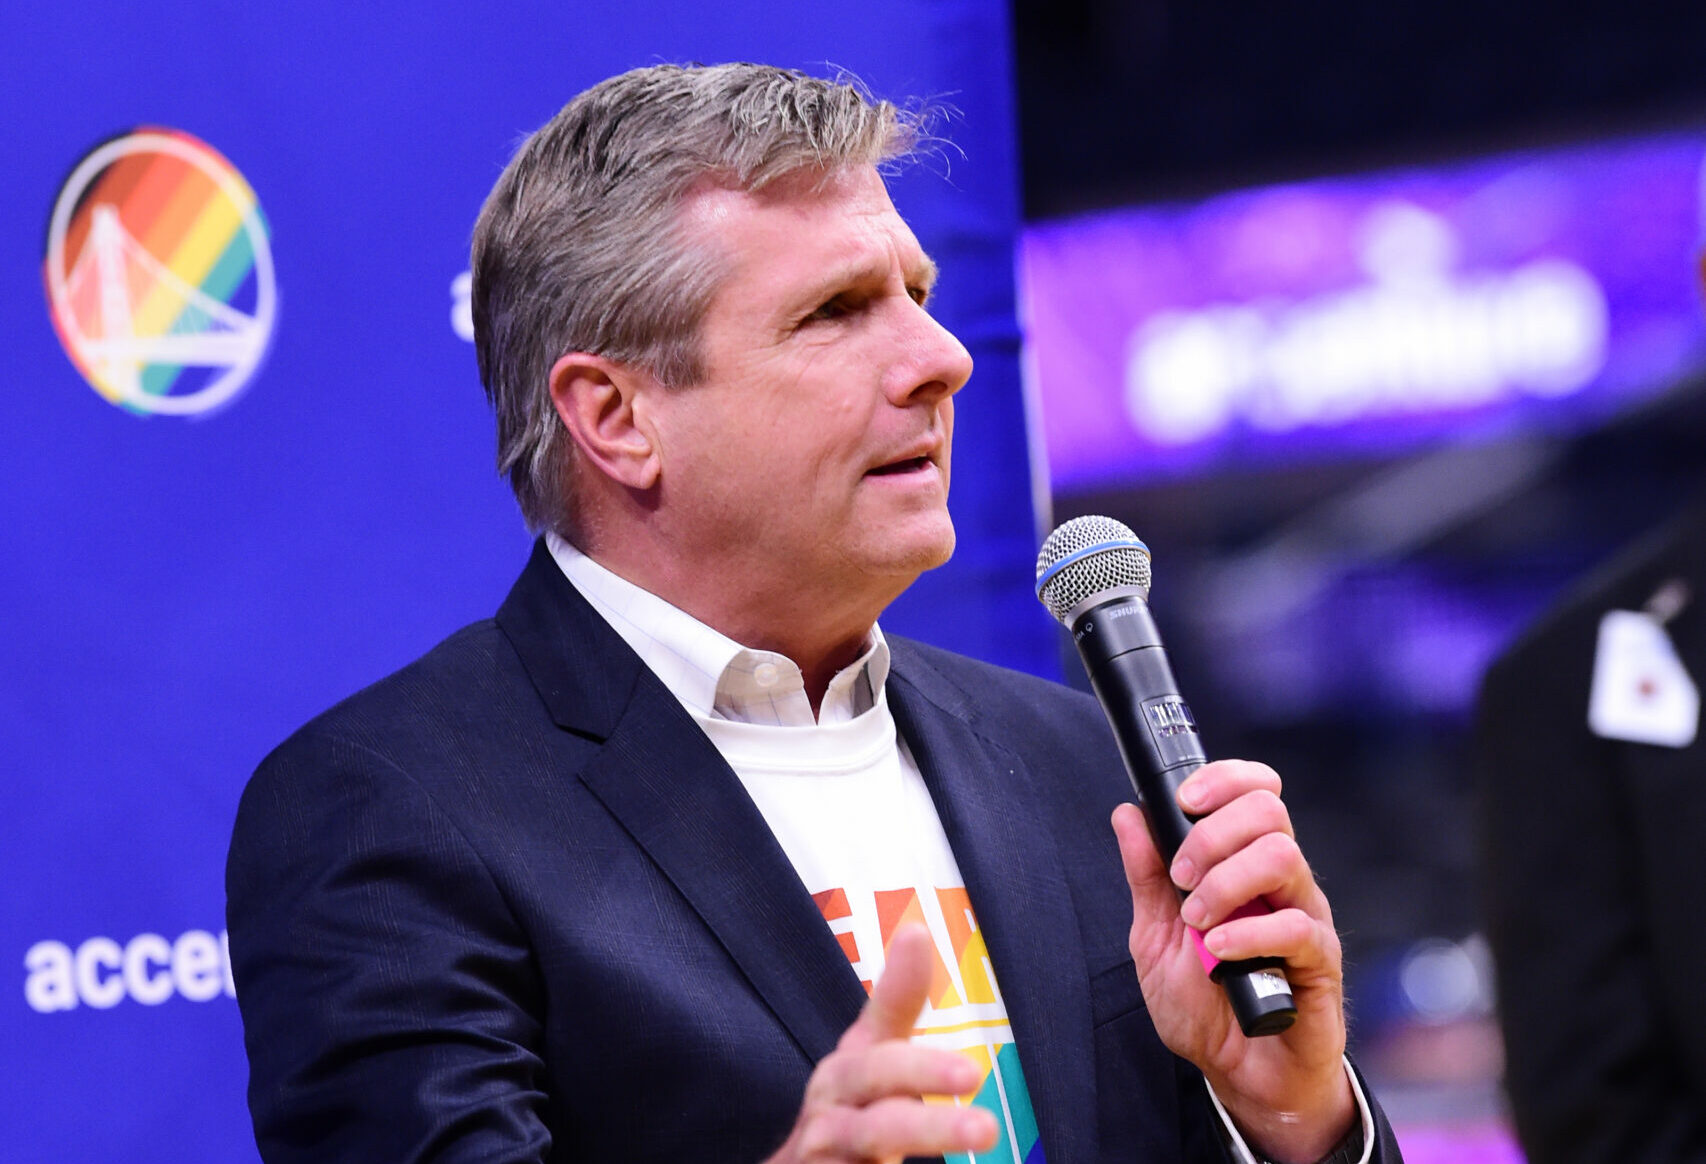 Warriors President & COO Rick Welts to step away at the conclusion of the 2020-21 season